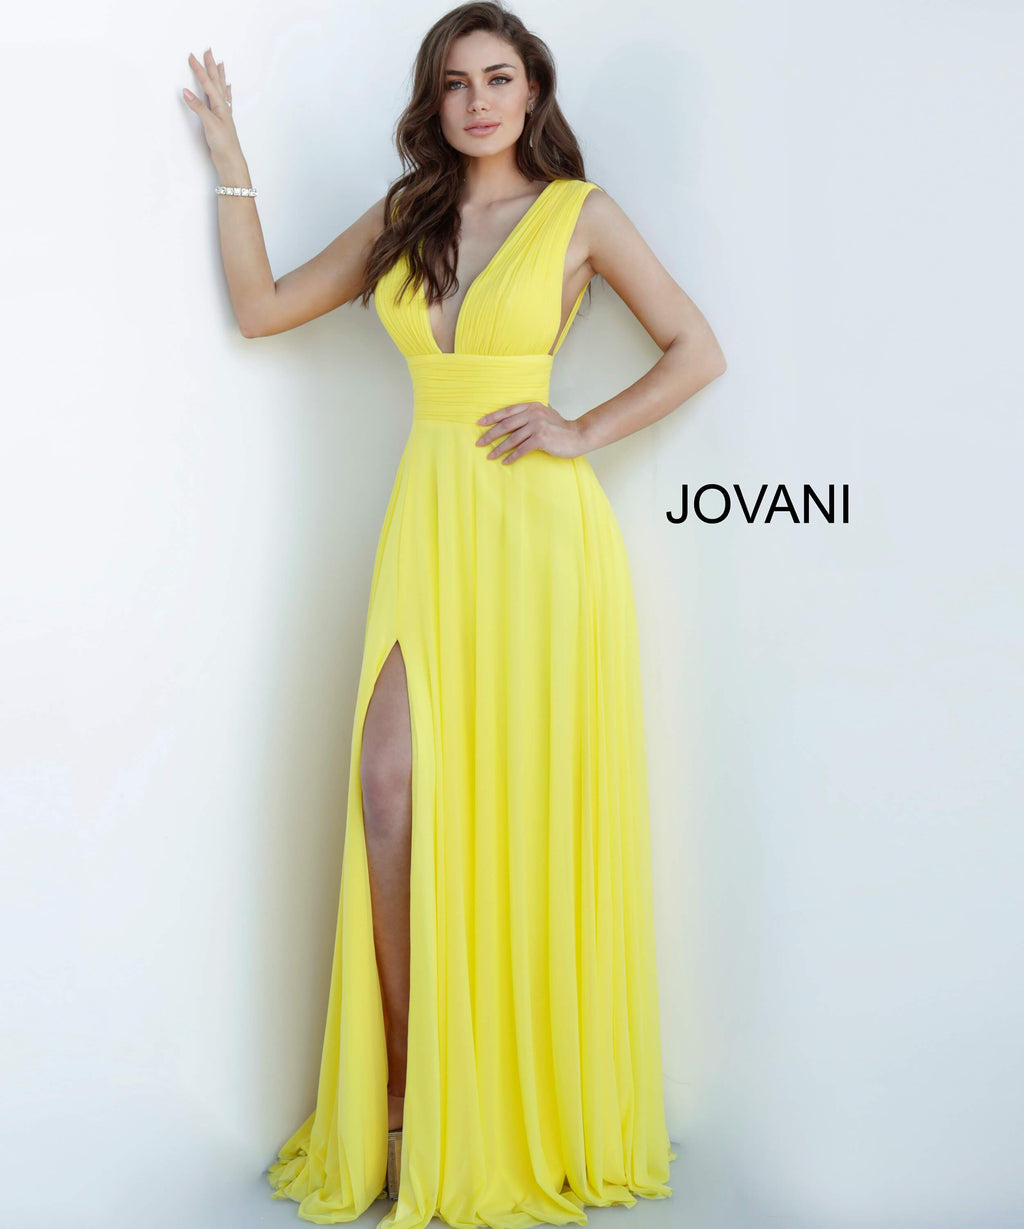 JOVANI 2585 Chiffon Plunging Neckline Evening Dress